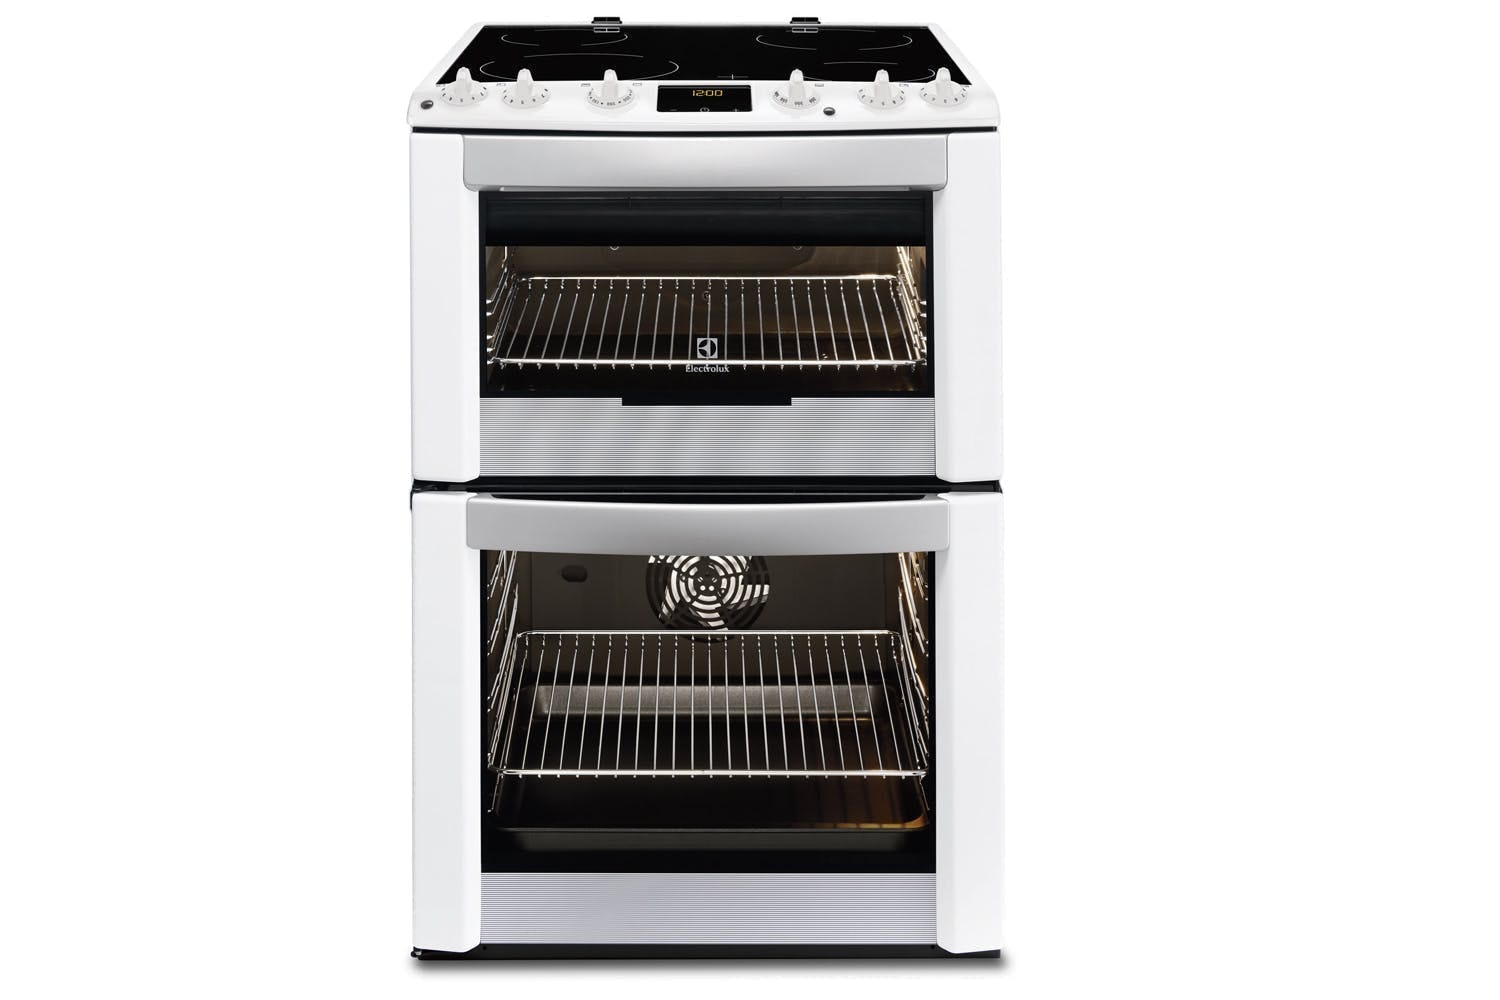 Electrolux 60cm Electric Cooker | EKC6461AOW | White